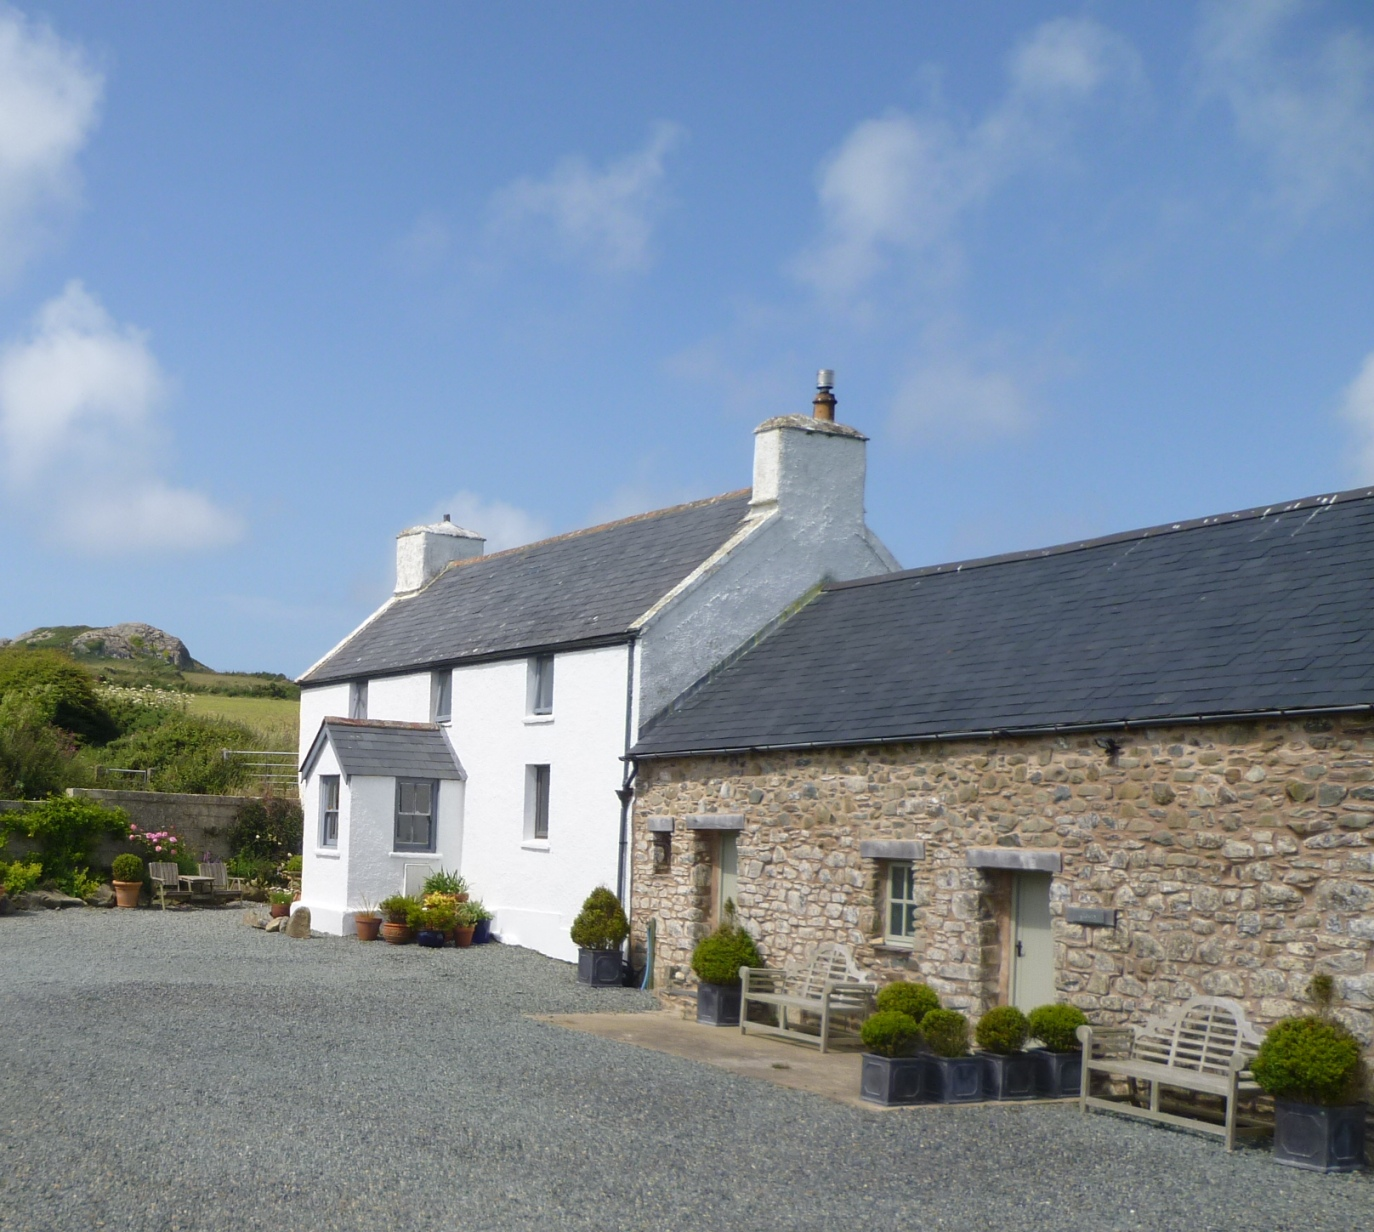 StDavidsHolidayCottages